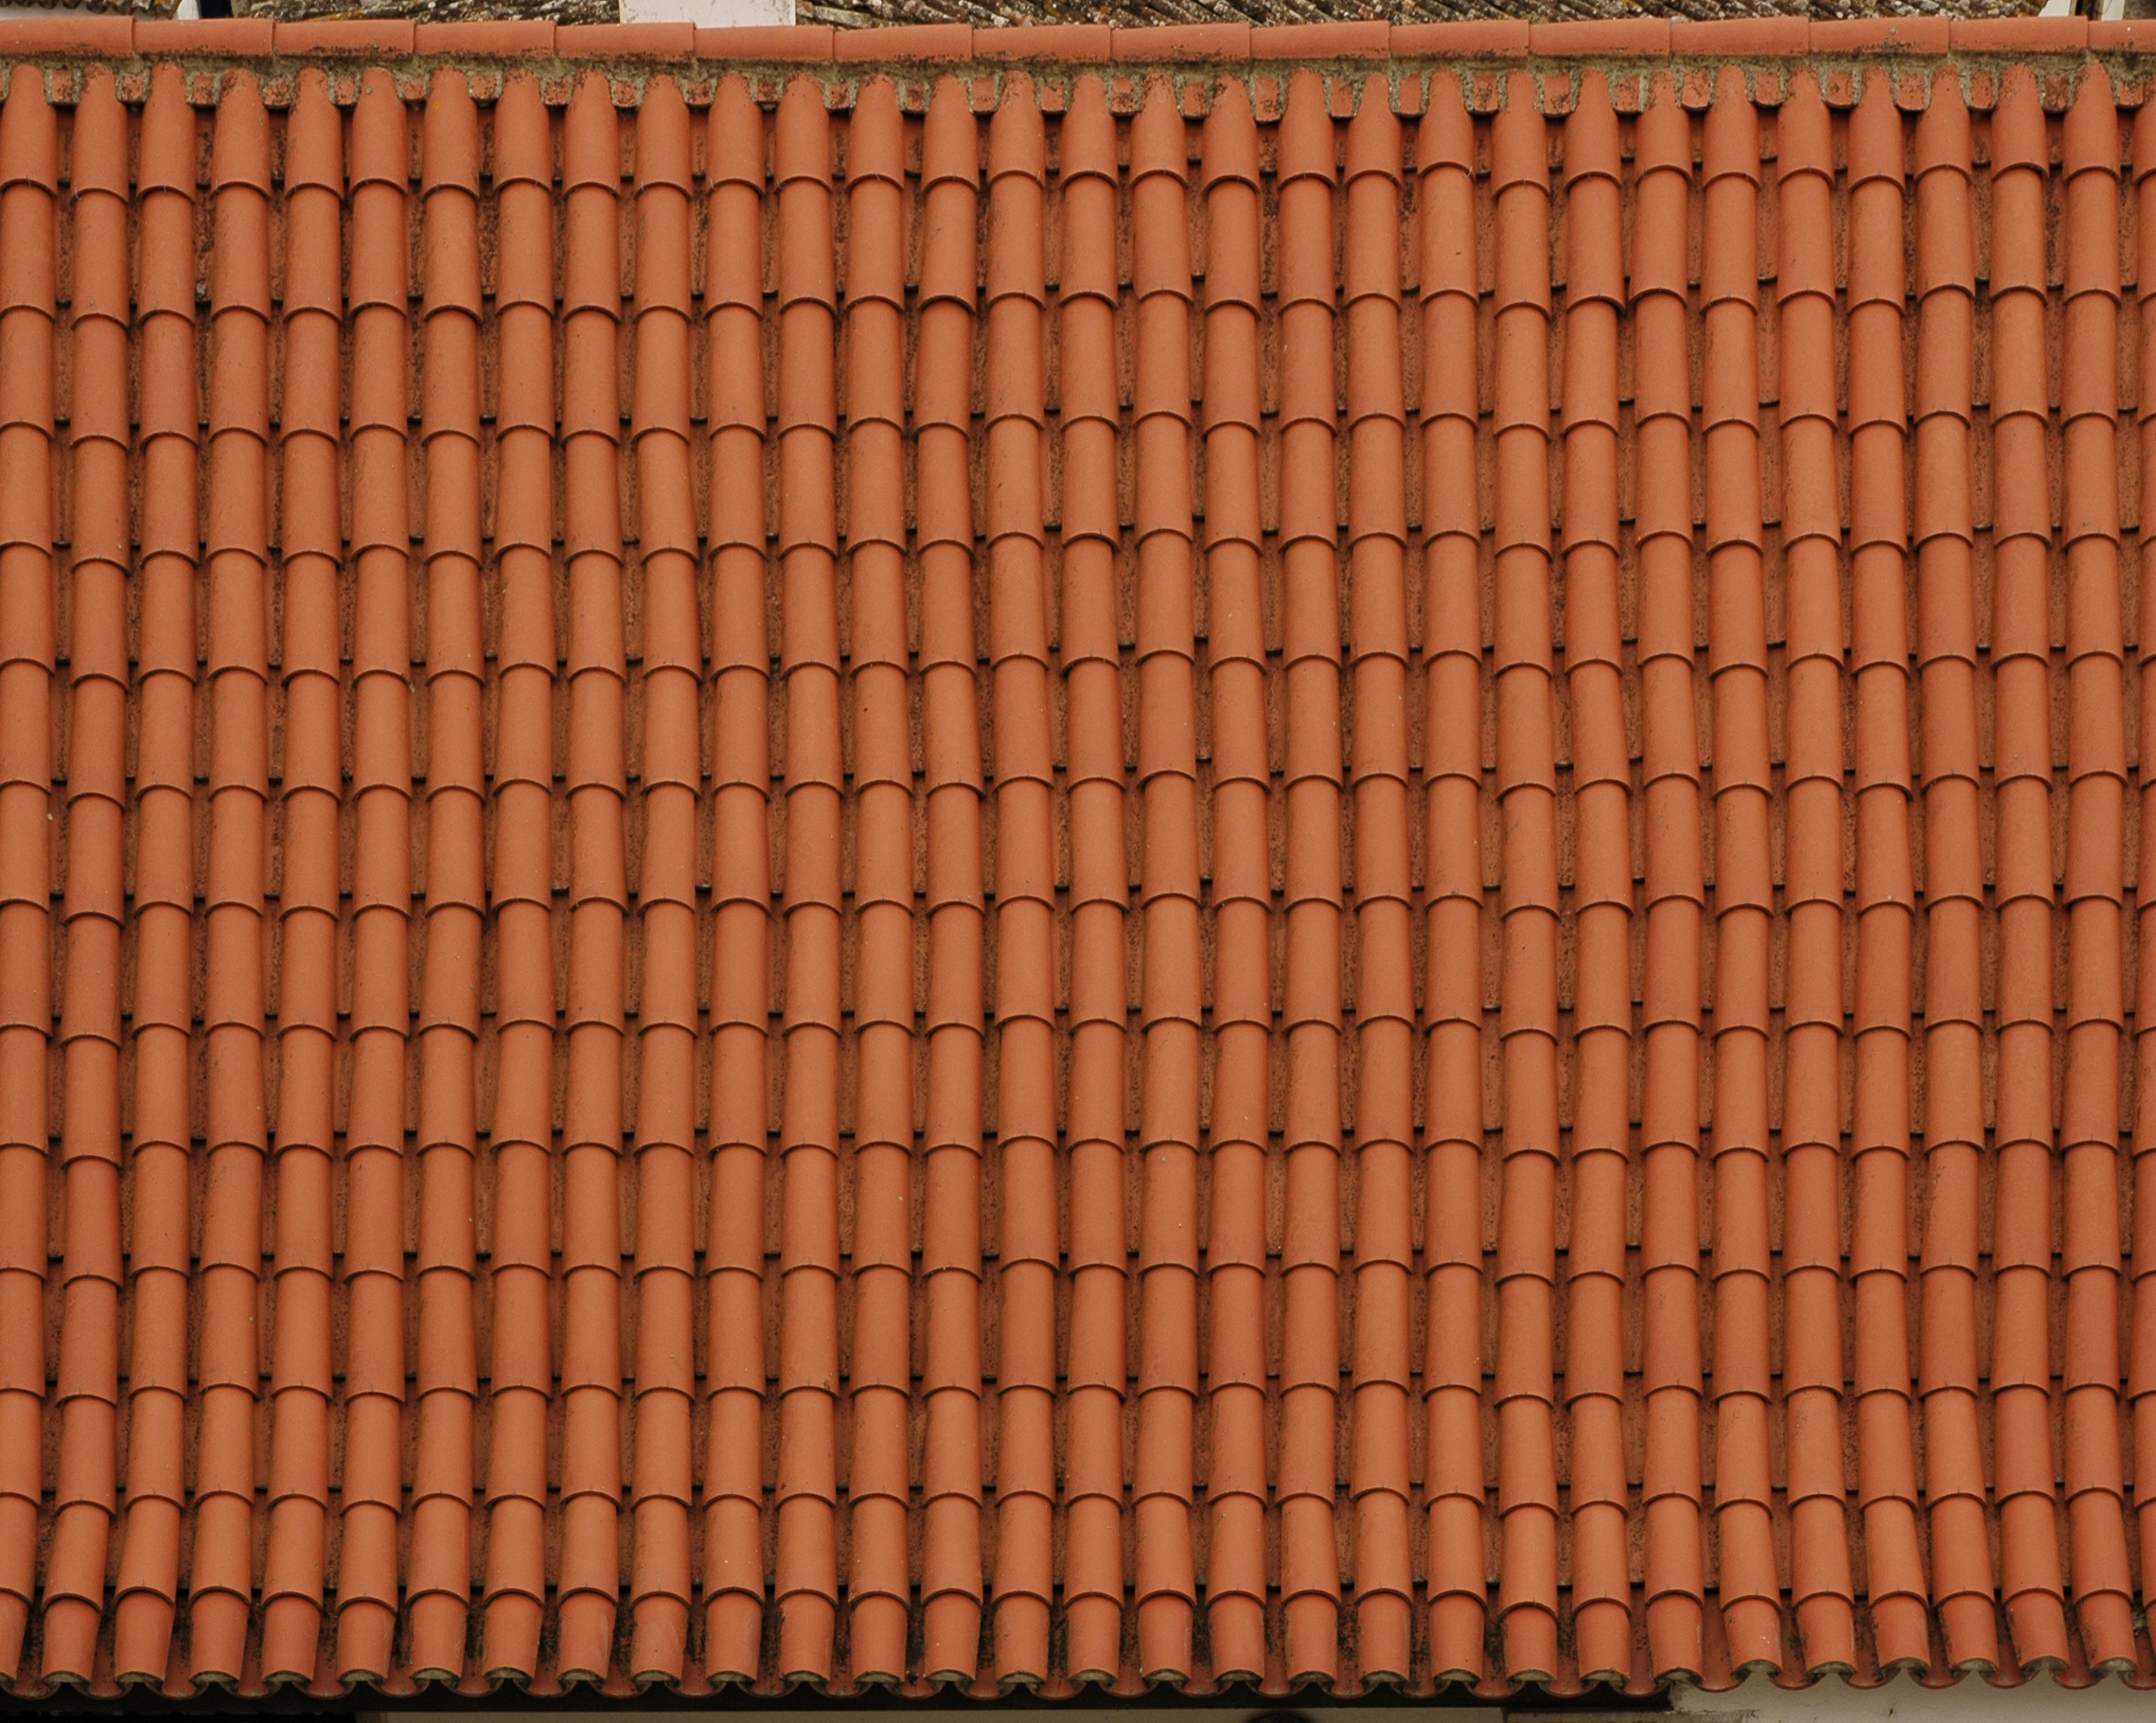 roofing roof tile texture.